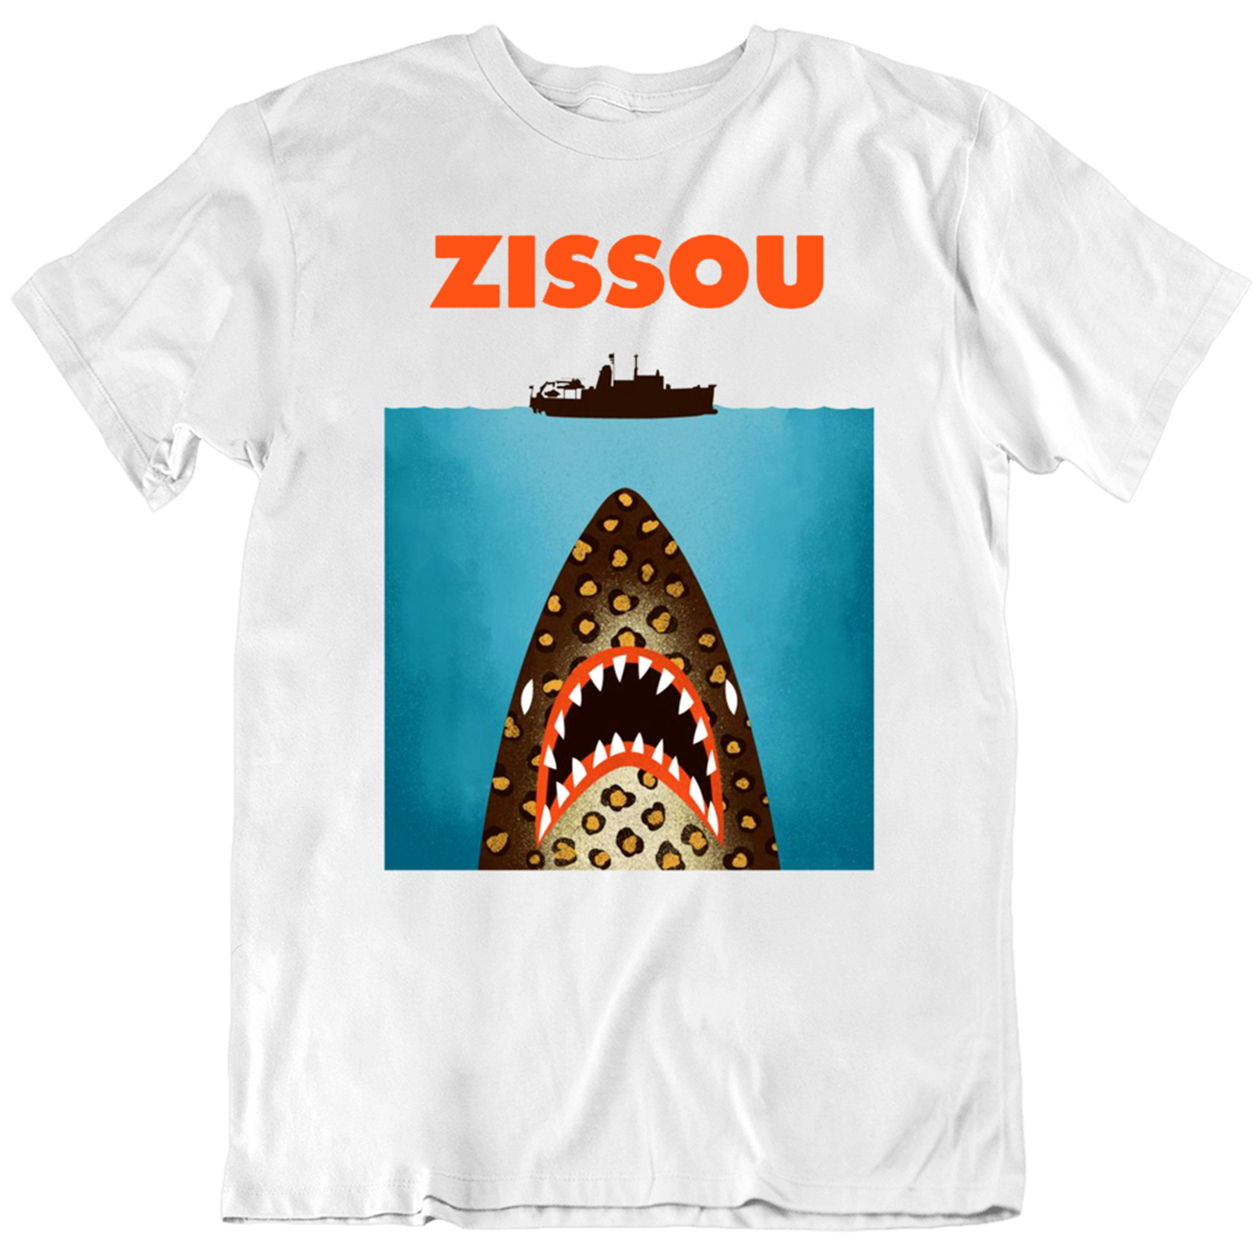 Zissou Bill Murray The Movie Jaws Parody Tops Tee T Shirt Men Gift New From US T-Shirt New Cool Gym image